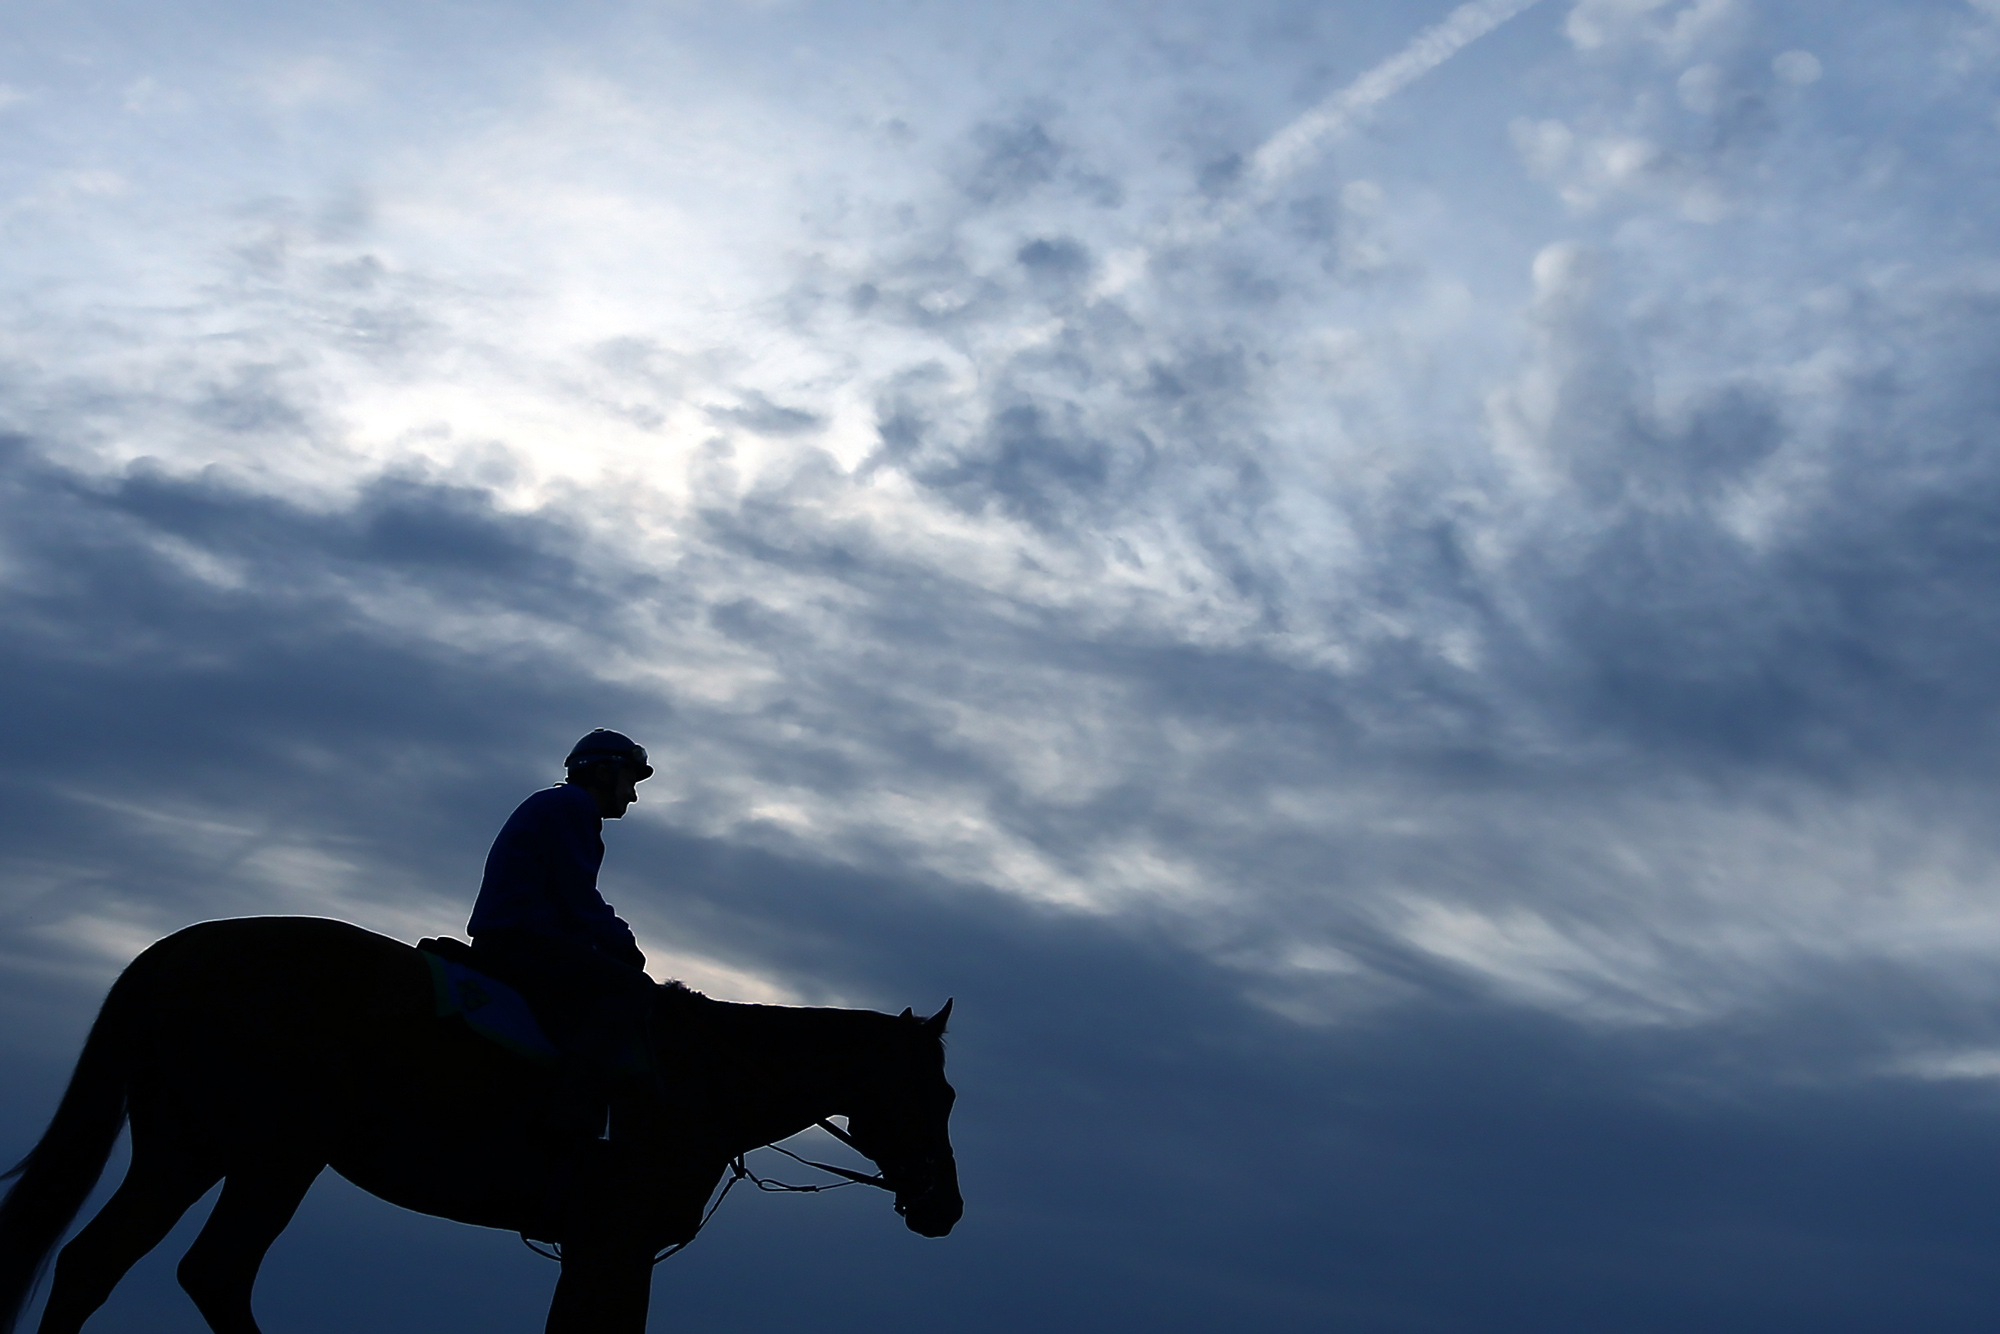 A horse and jockey leave the race track after training one day prior to the 140th Preakness Stakes at Pimlico Race Course on May 15, 2015 in Baltimore, Maryland.